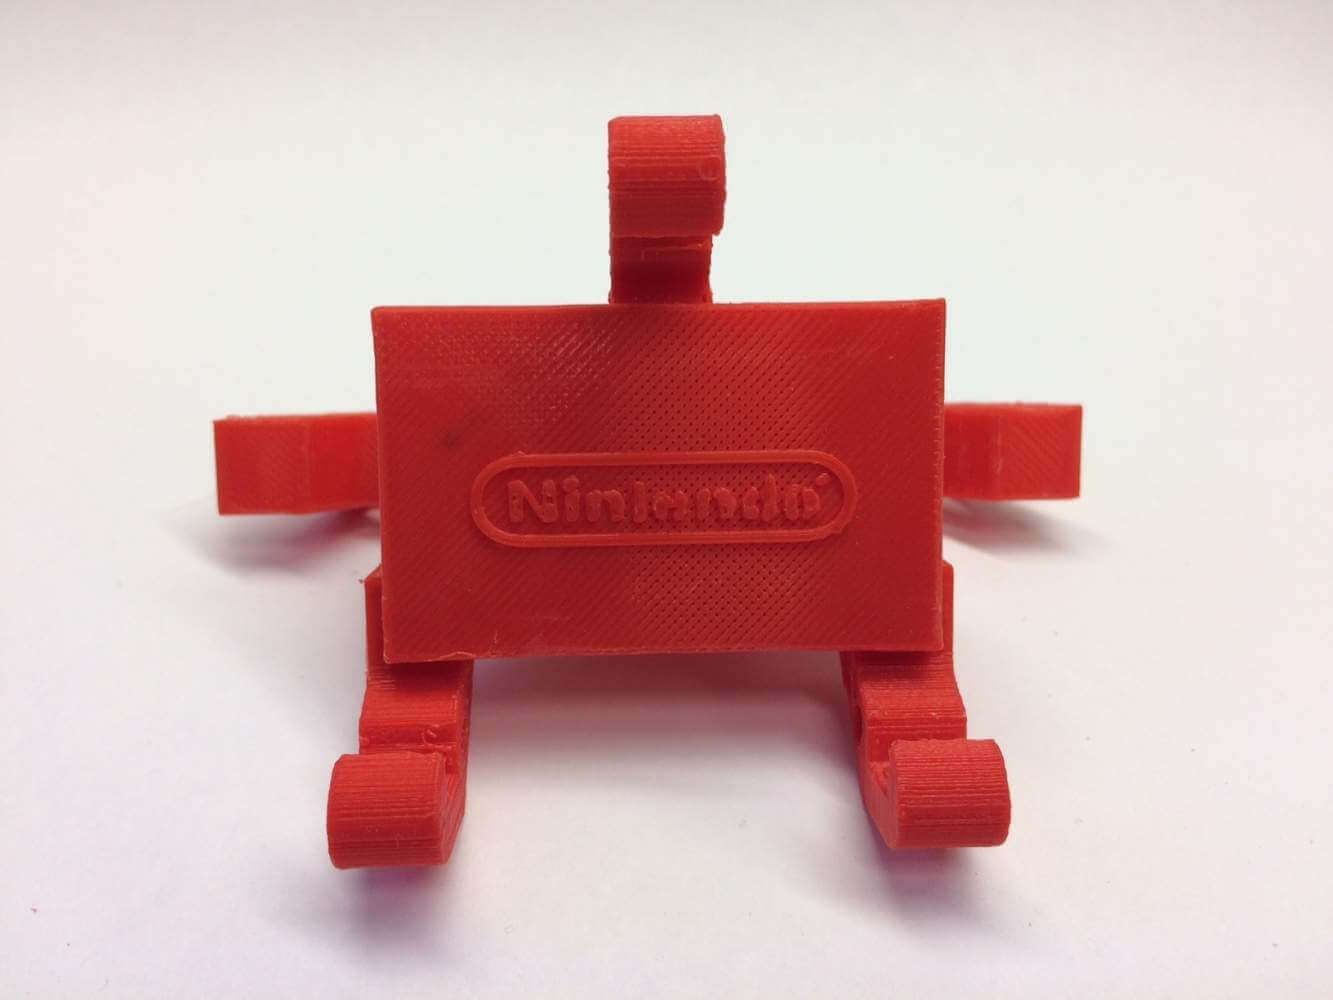 Image of Nintendo Switch Mods to 3D Print: Car Mount | 3D